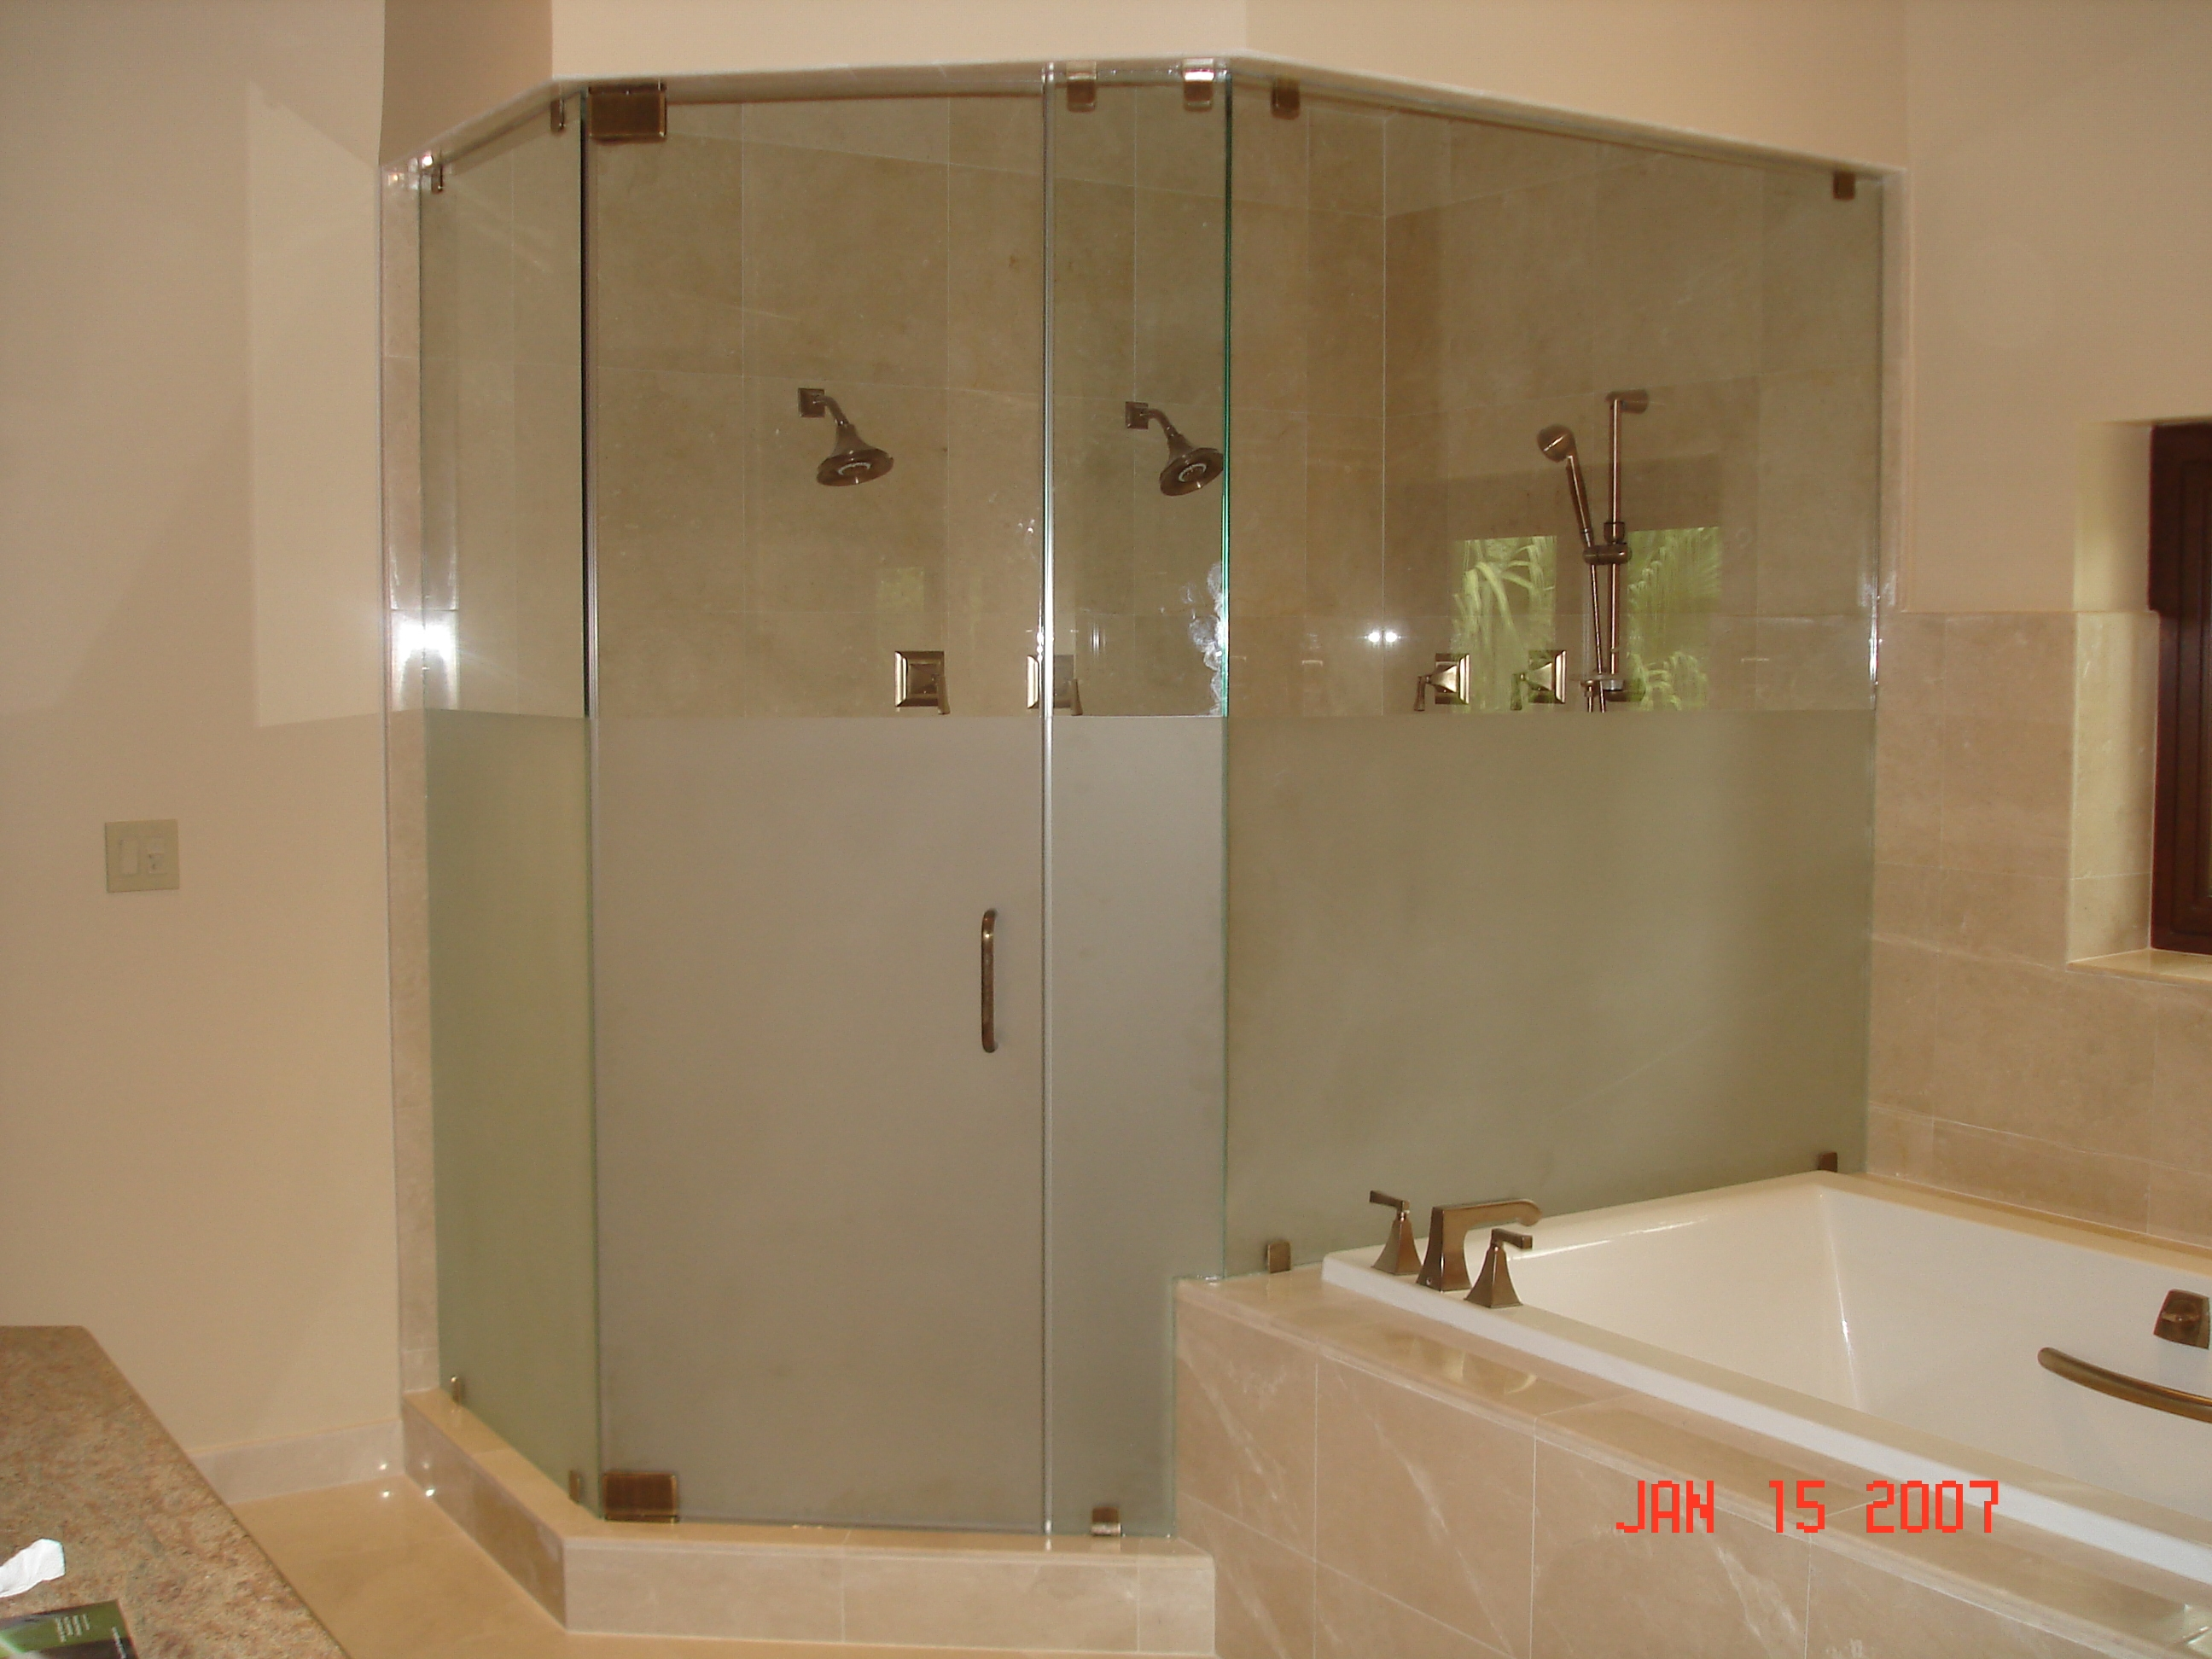 Frosted Shower Doors Vs Clear Doors Ideas